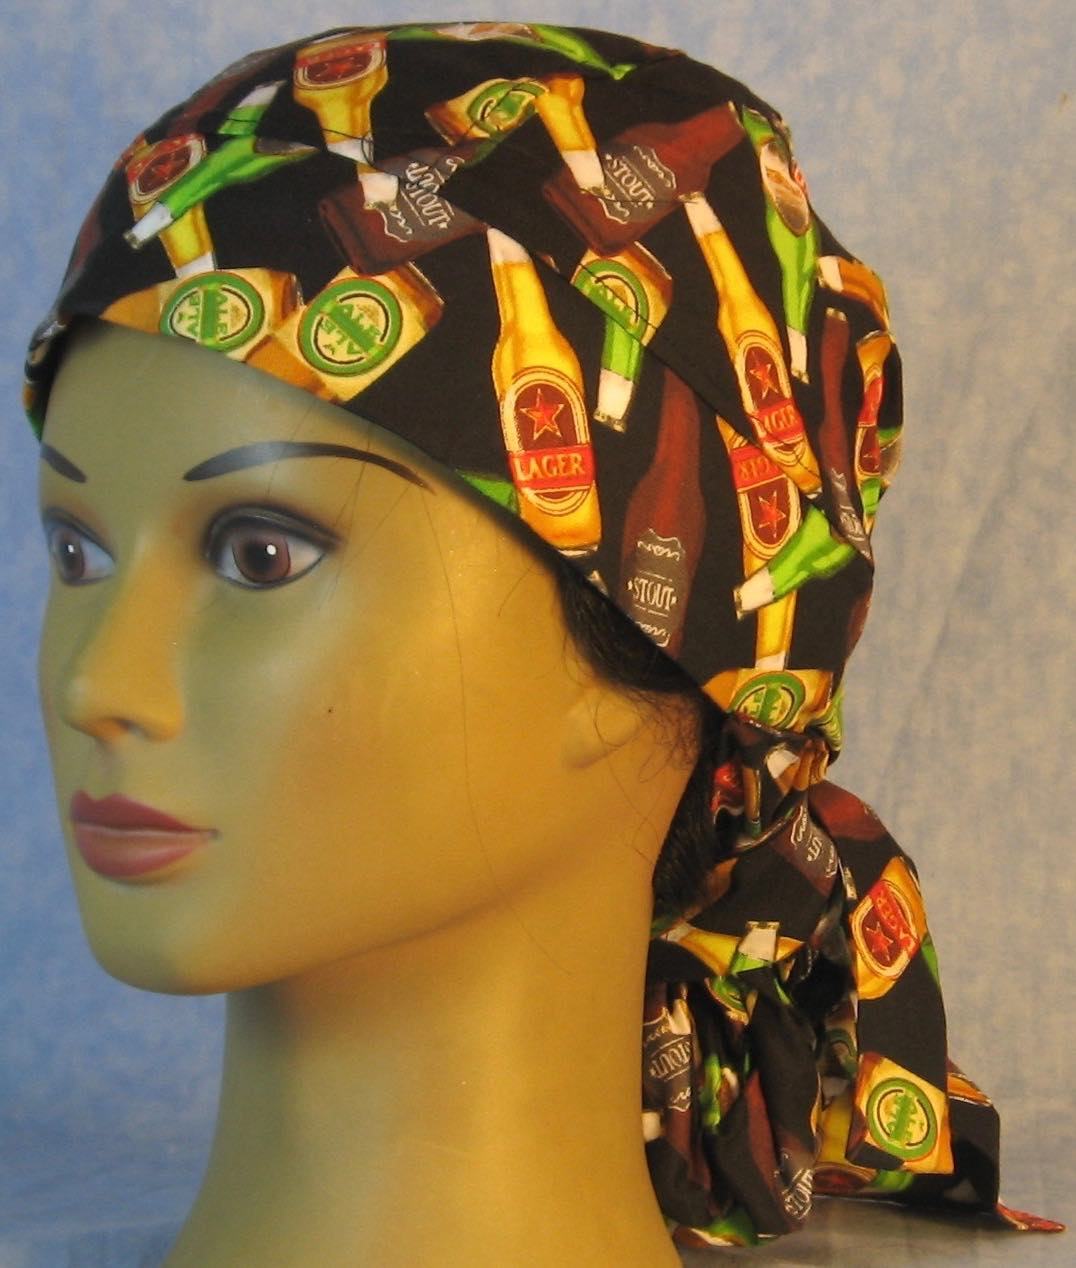 Hair Bag Do Rag in Beer Bottles on Black - Adult 1XL-3XL